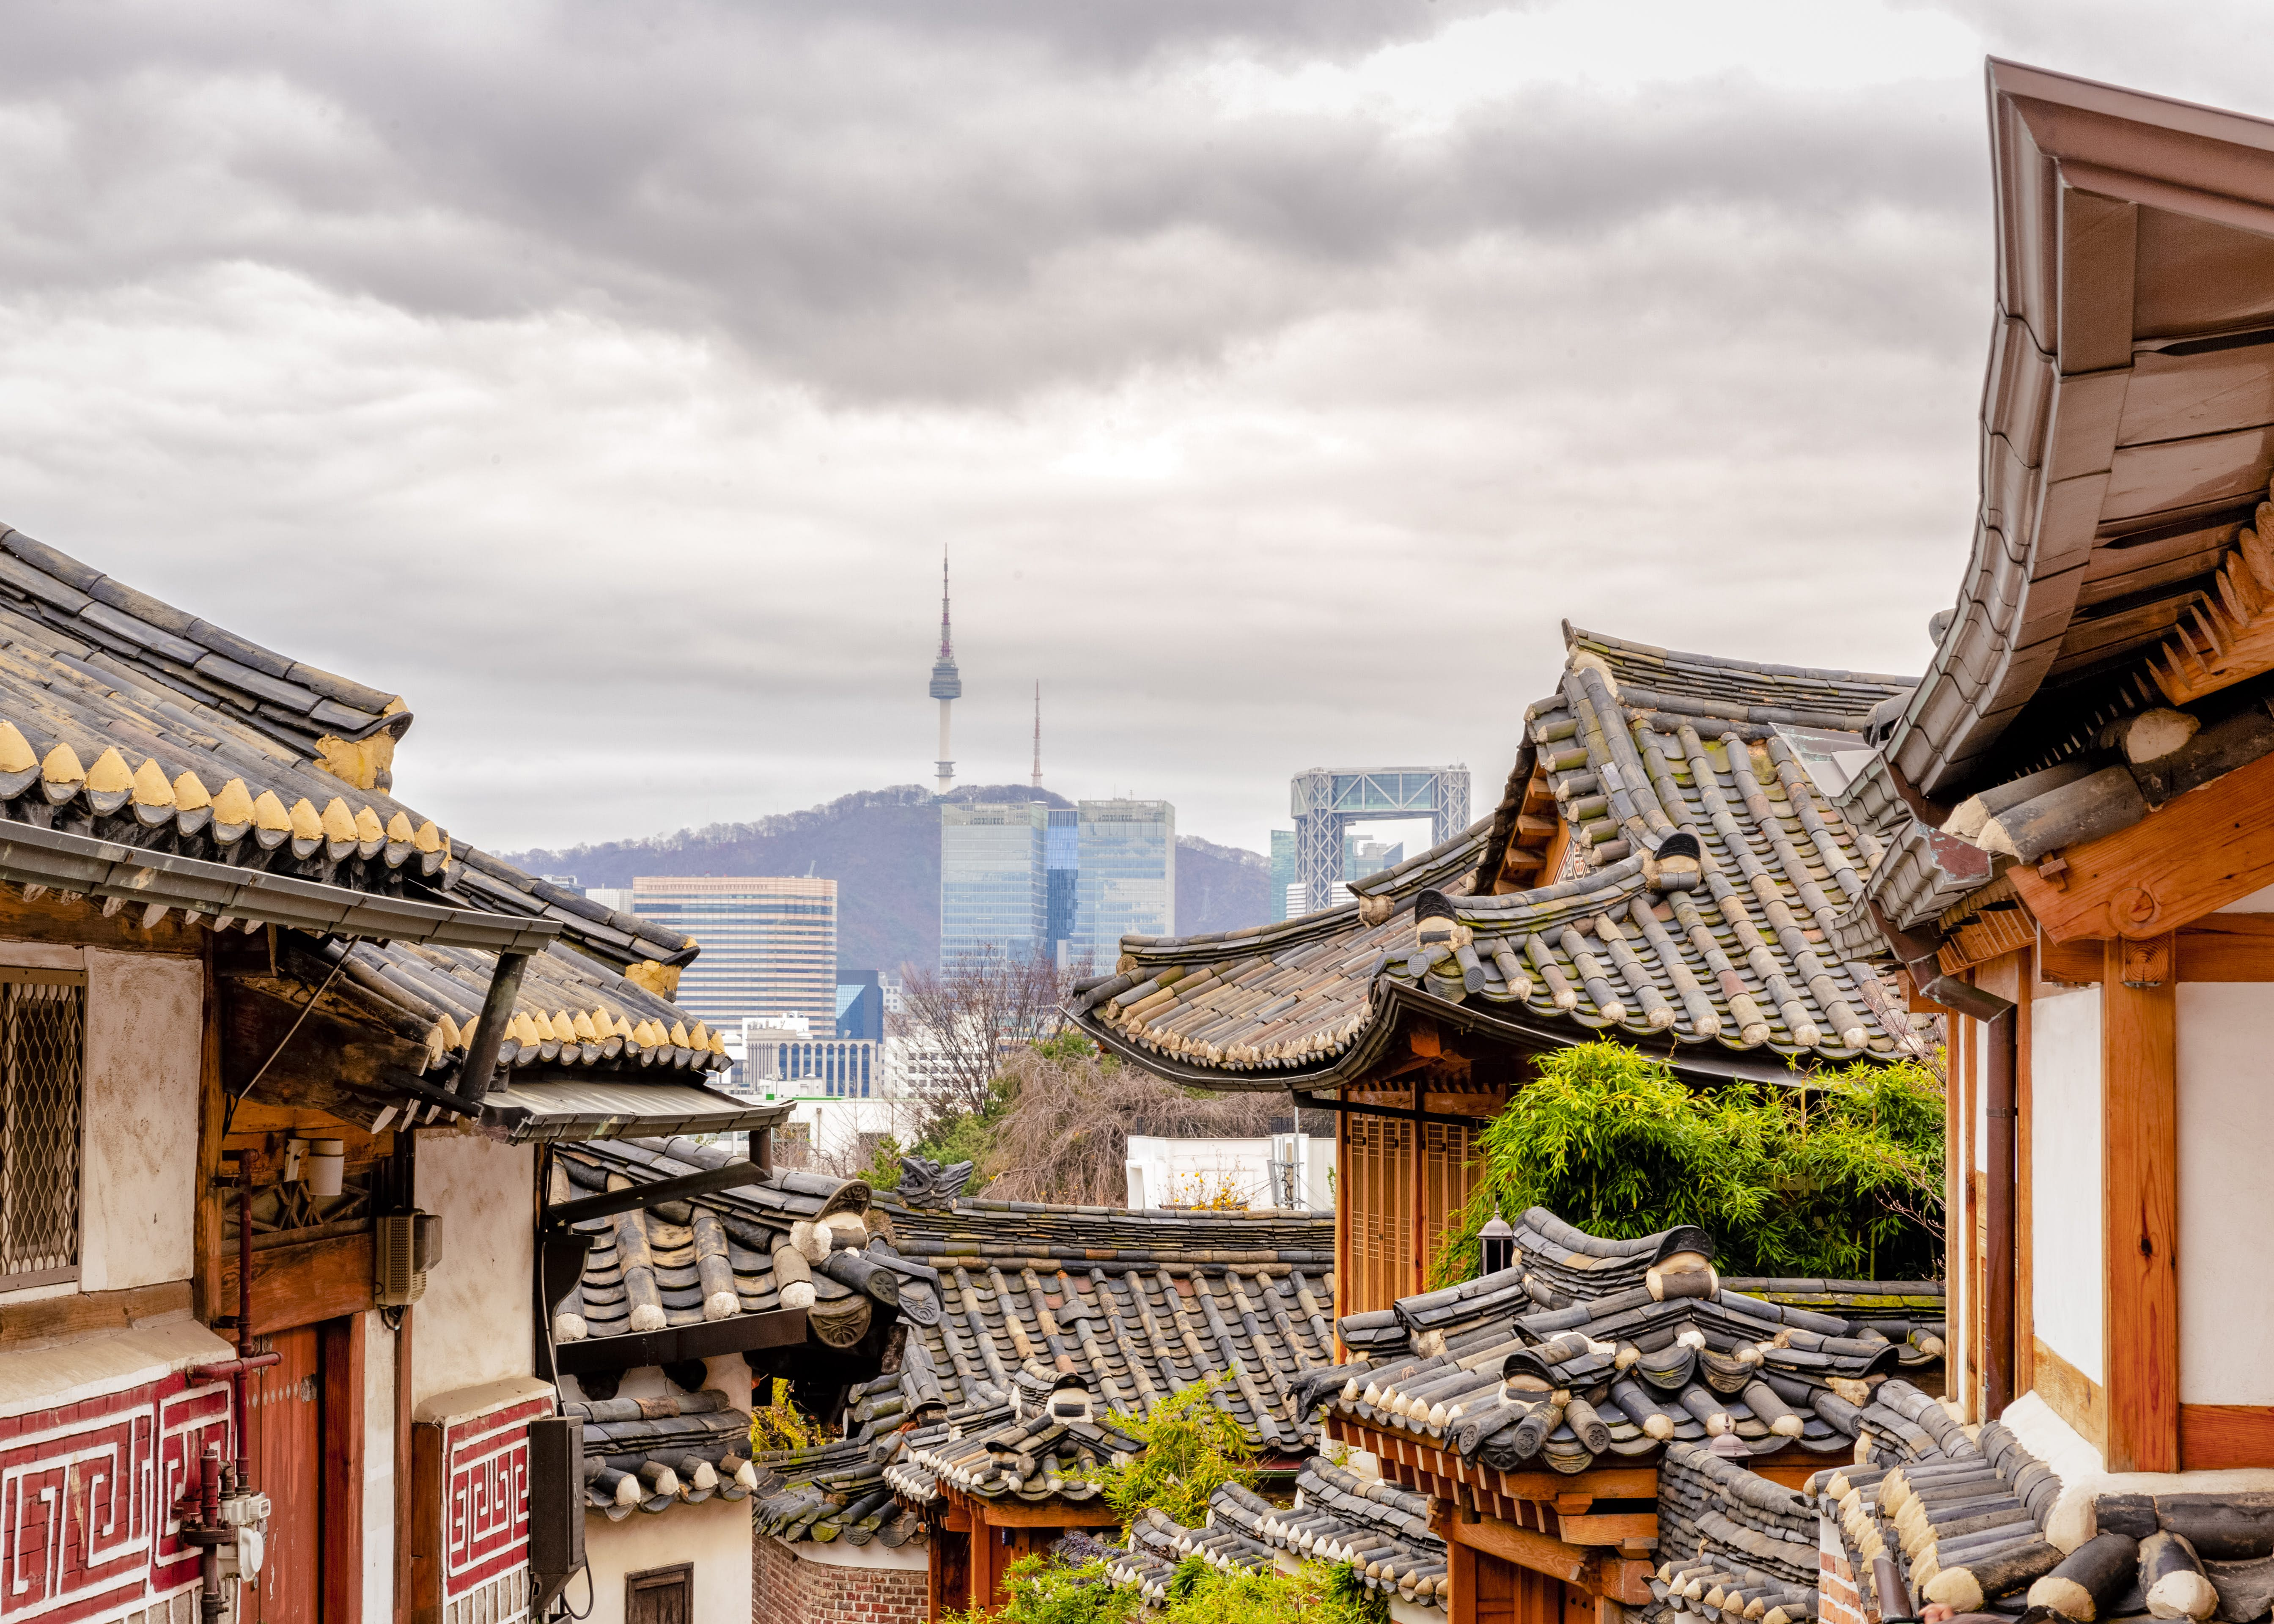 The traditional rubs up against the futuristic in South Korea's capital, Seoul © uschools / E+ / Getty Images